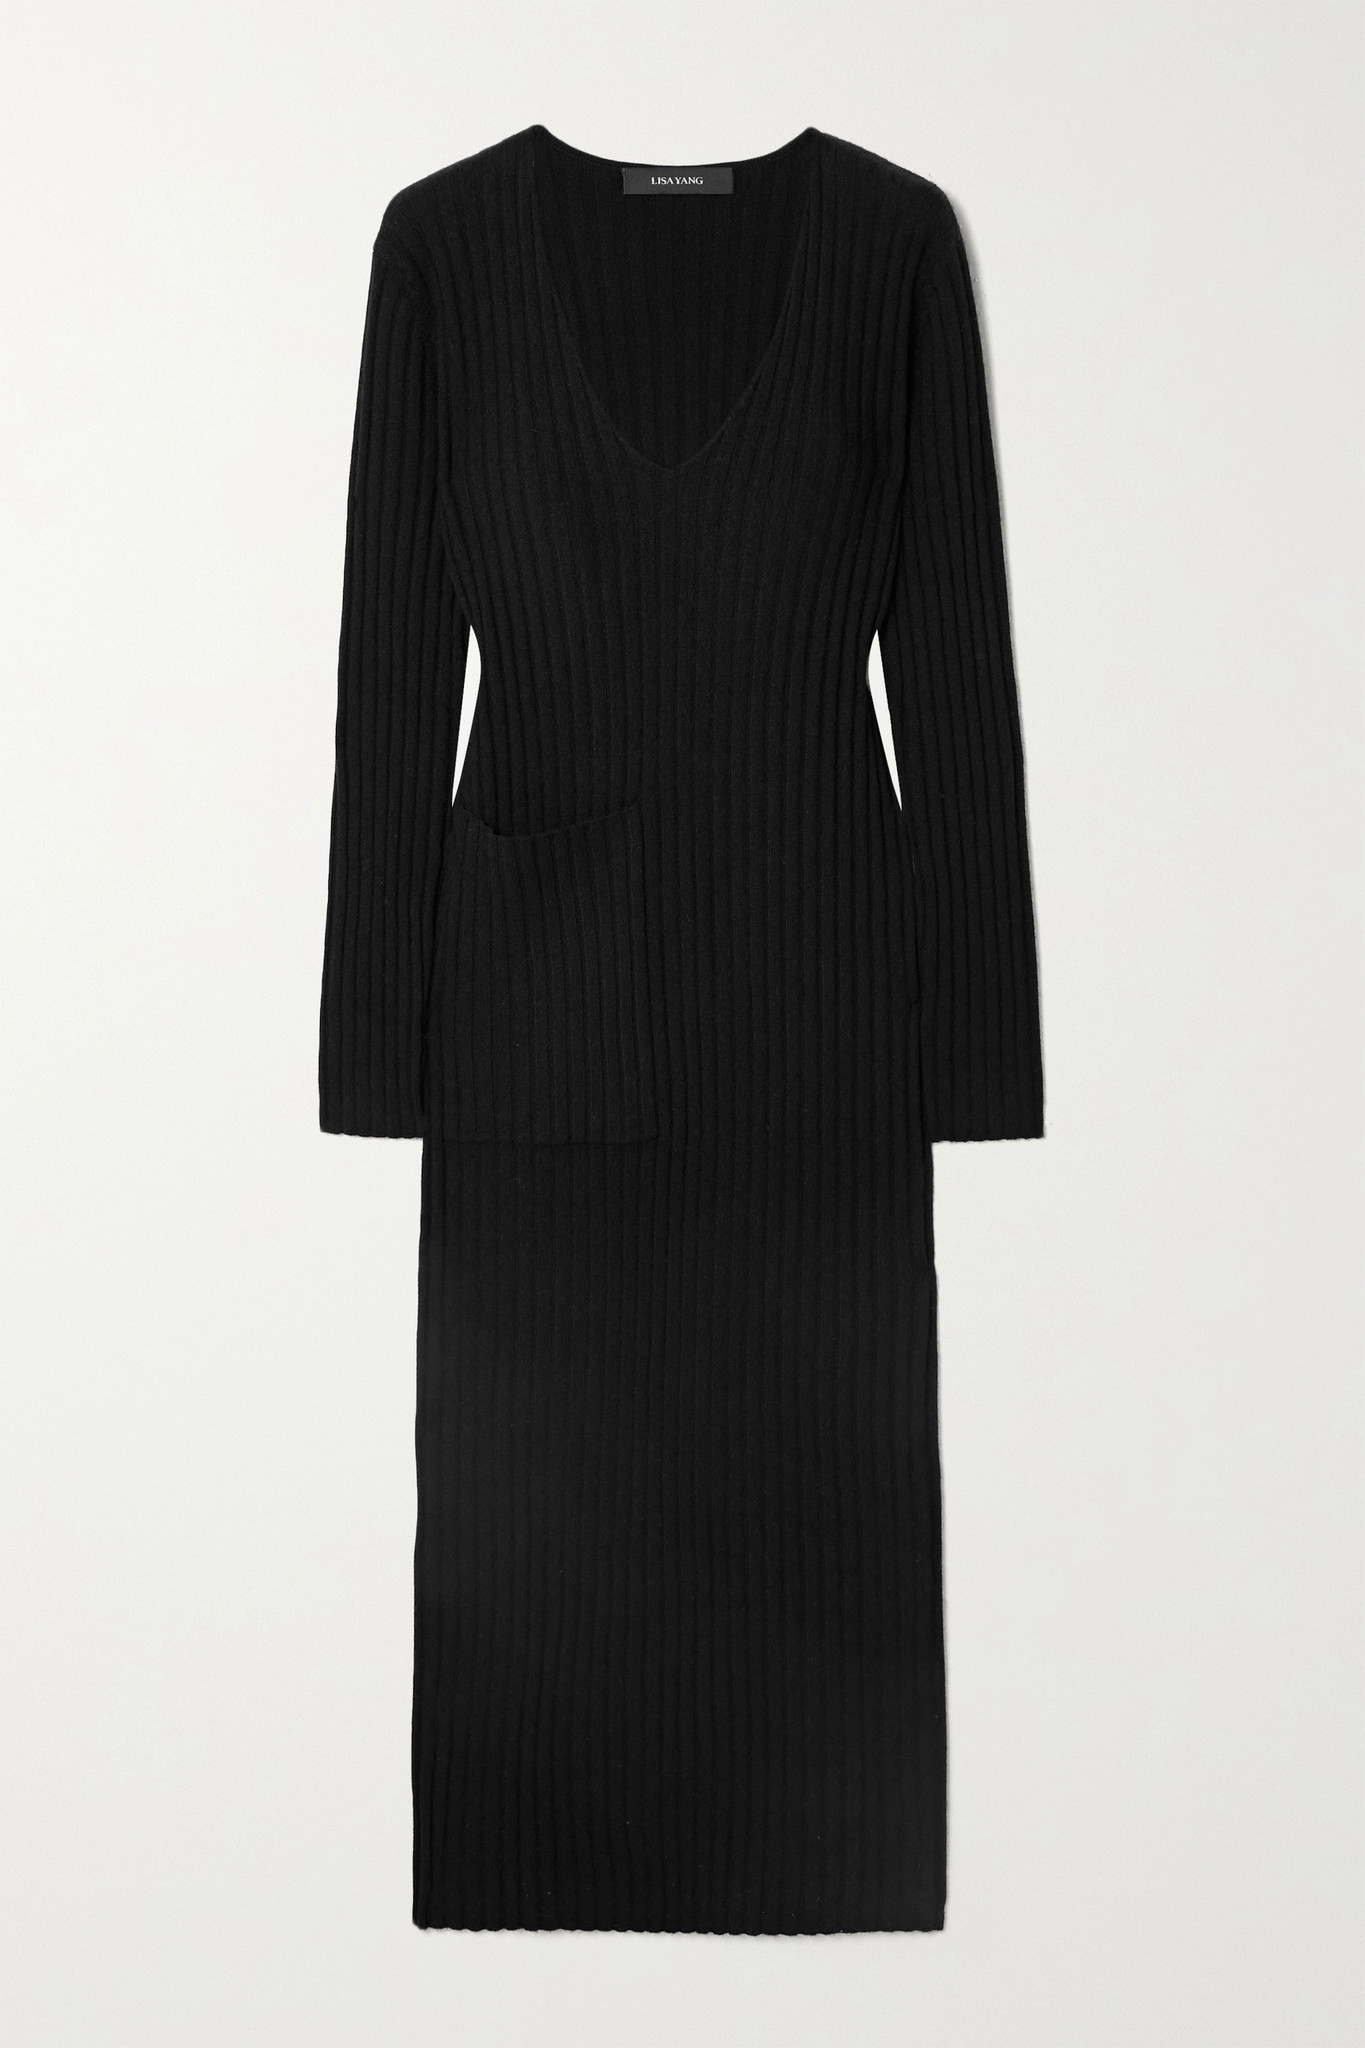 LISA YANG - Willow Ribbed Cashmere Midi Dress - Black - 0